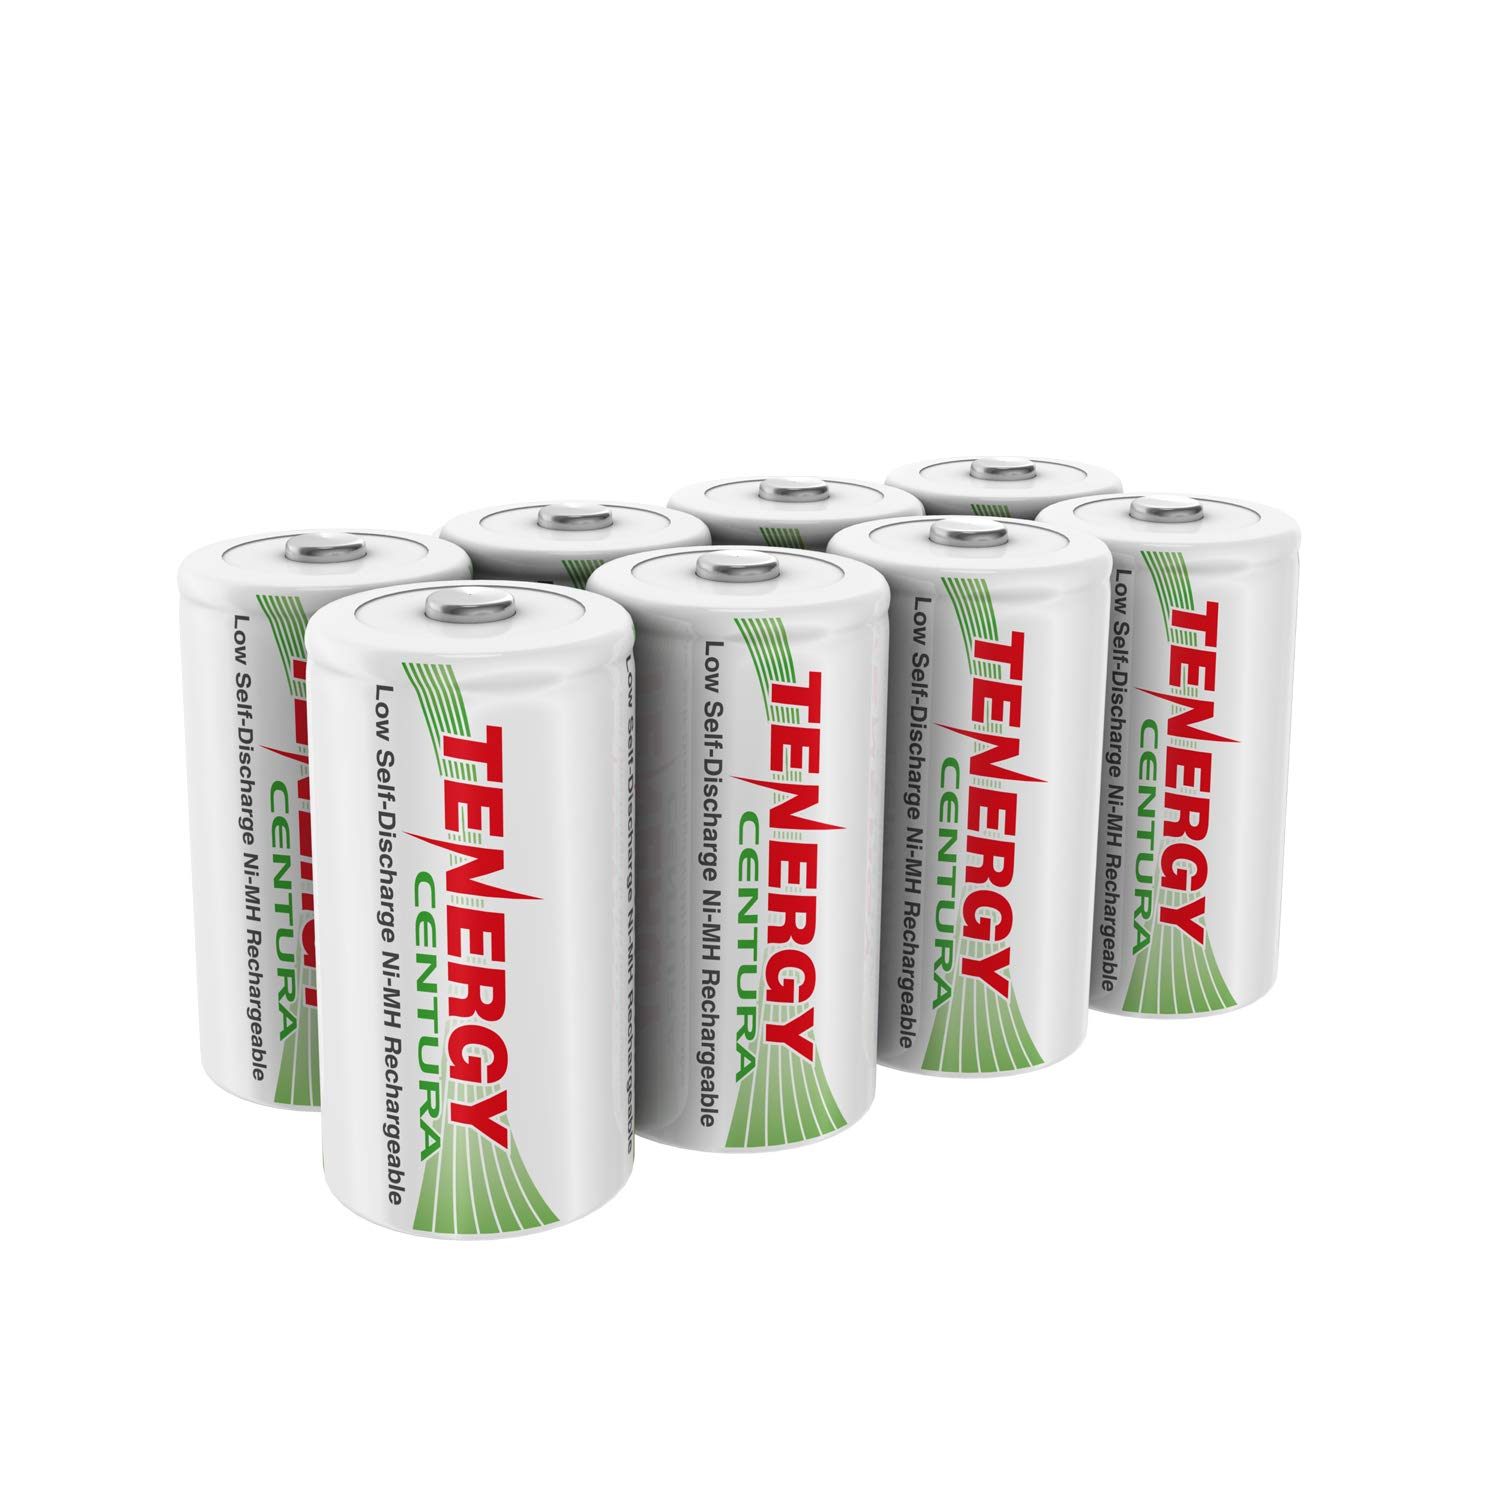 Tenergy Centura 1.2V NiMH Rechargeable D Battery, 8000mAh Low Self Discharge D Cell Batteries, Pre-Charged D Size Battery, 8 Pack - UL Certified